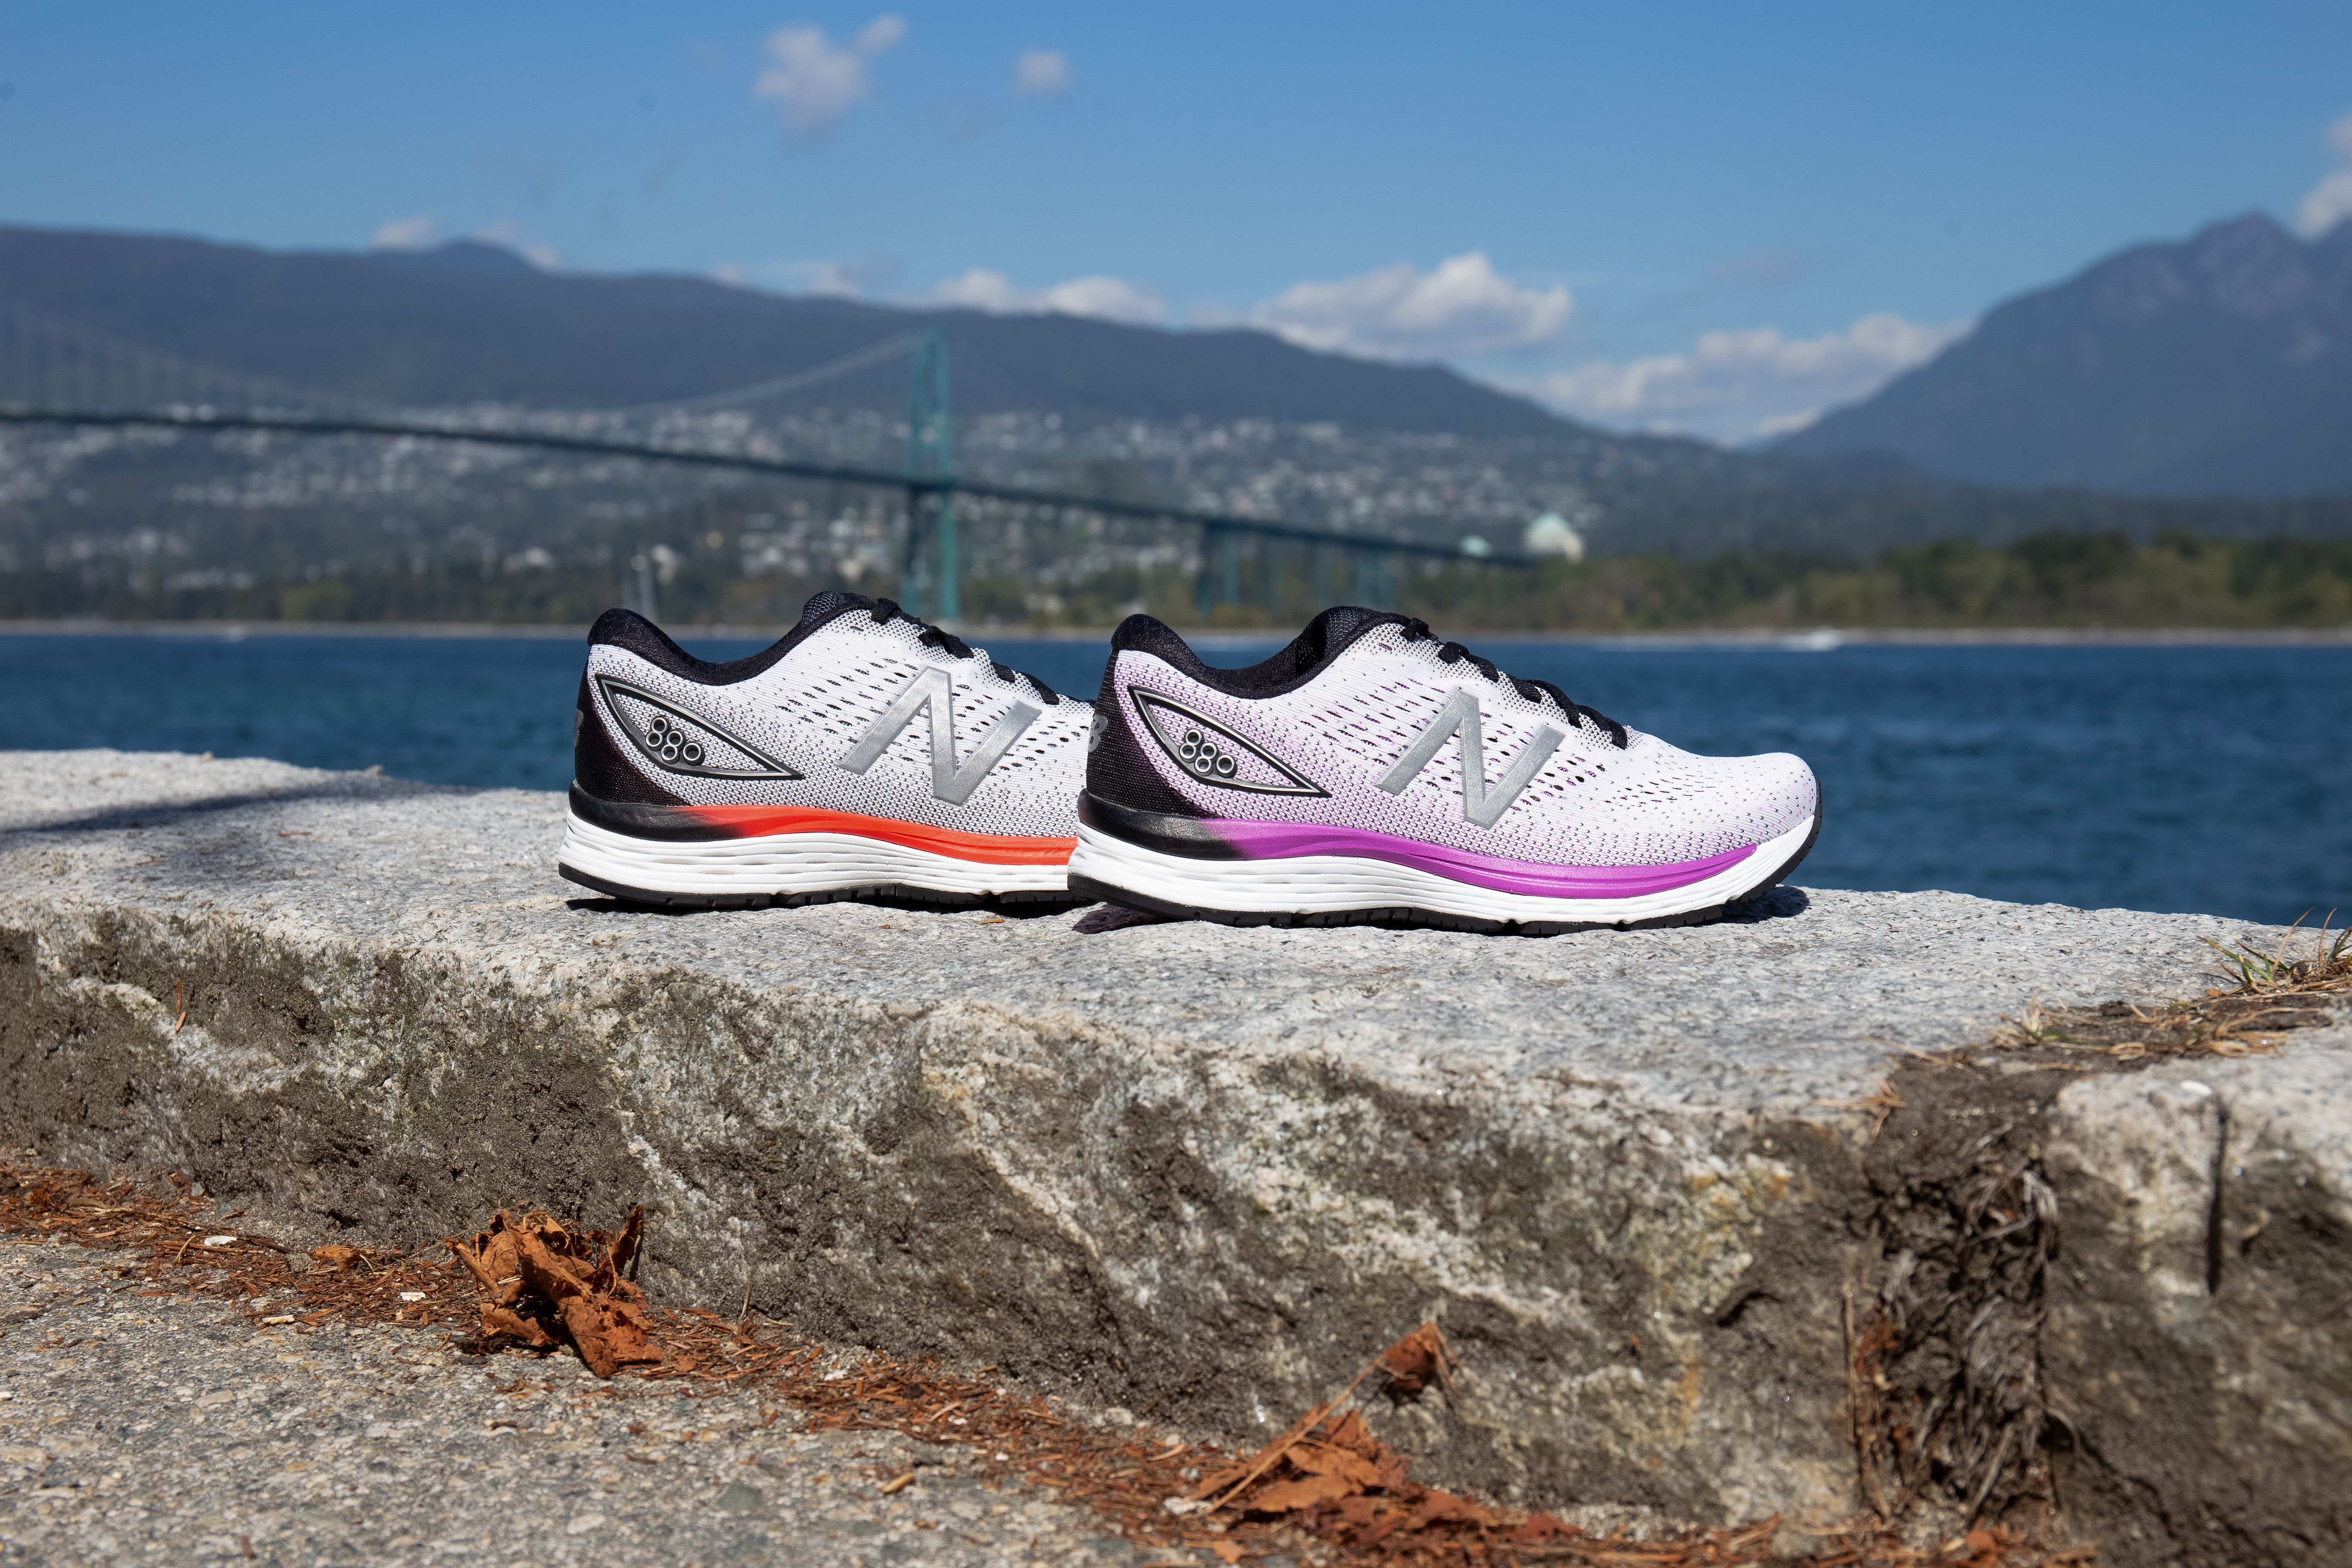 The Ultimate Choice For Dynamic Cushioning Our 880 Neutral Running